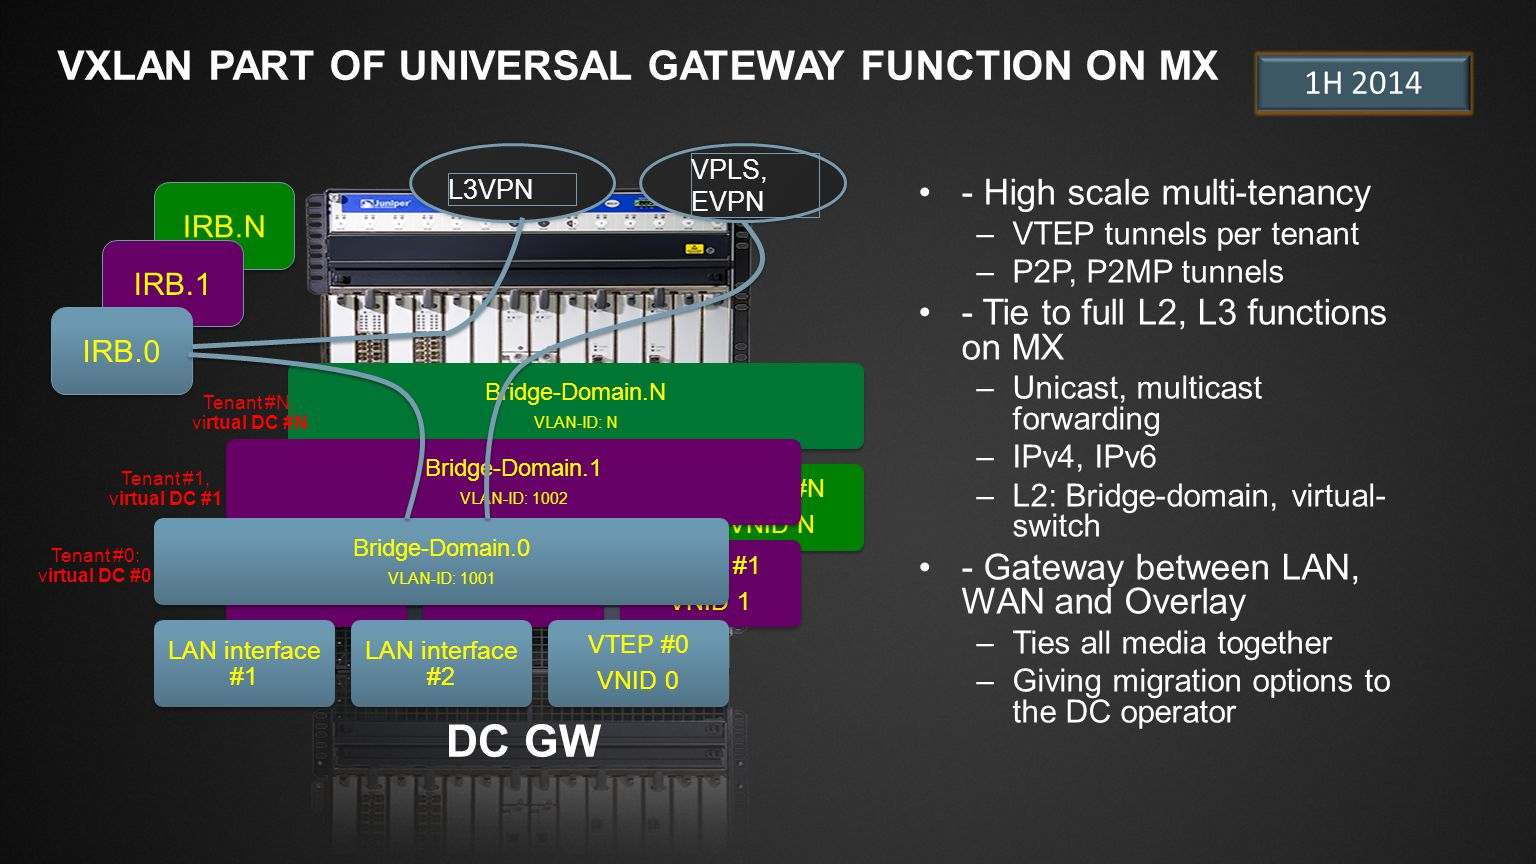 VXLAN PART OF UNIVERSAL GATEWAY FUNCTION ON MX